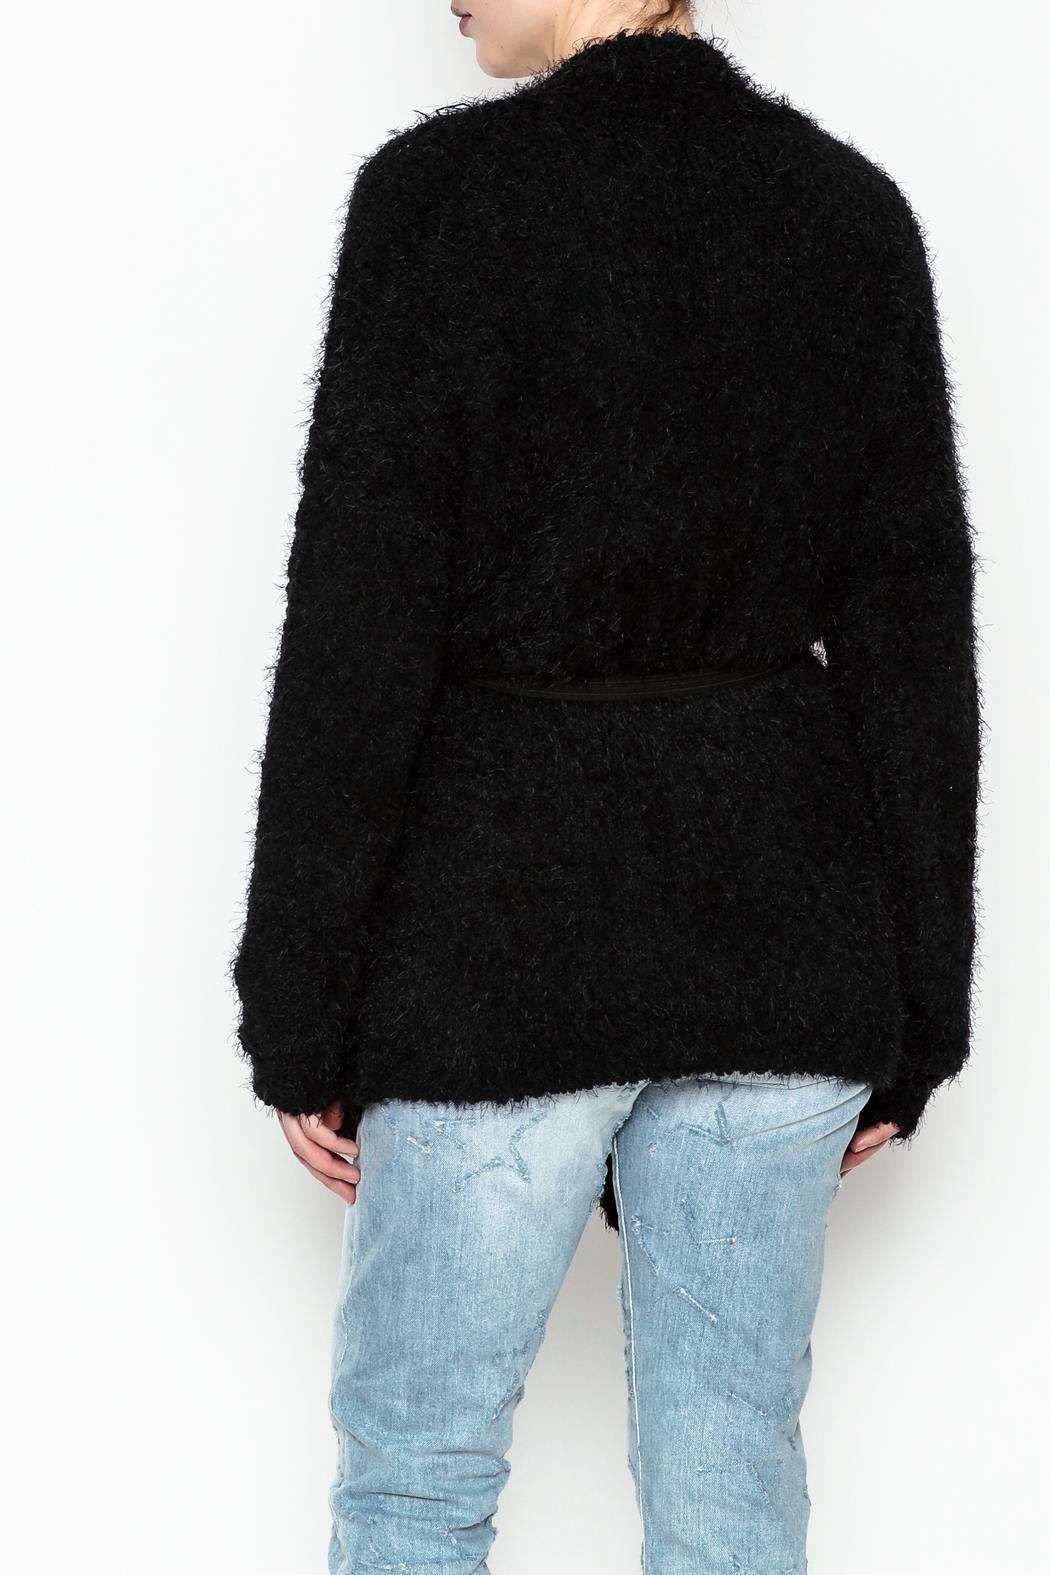 Current Air Sara Furry Cardi - Back Cropped Image